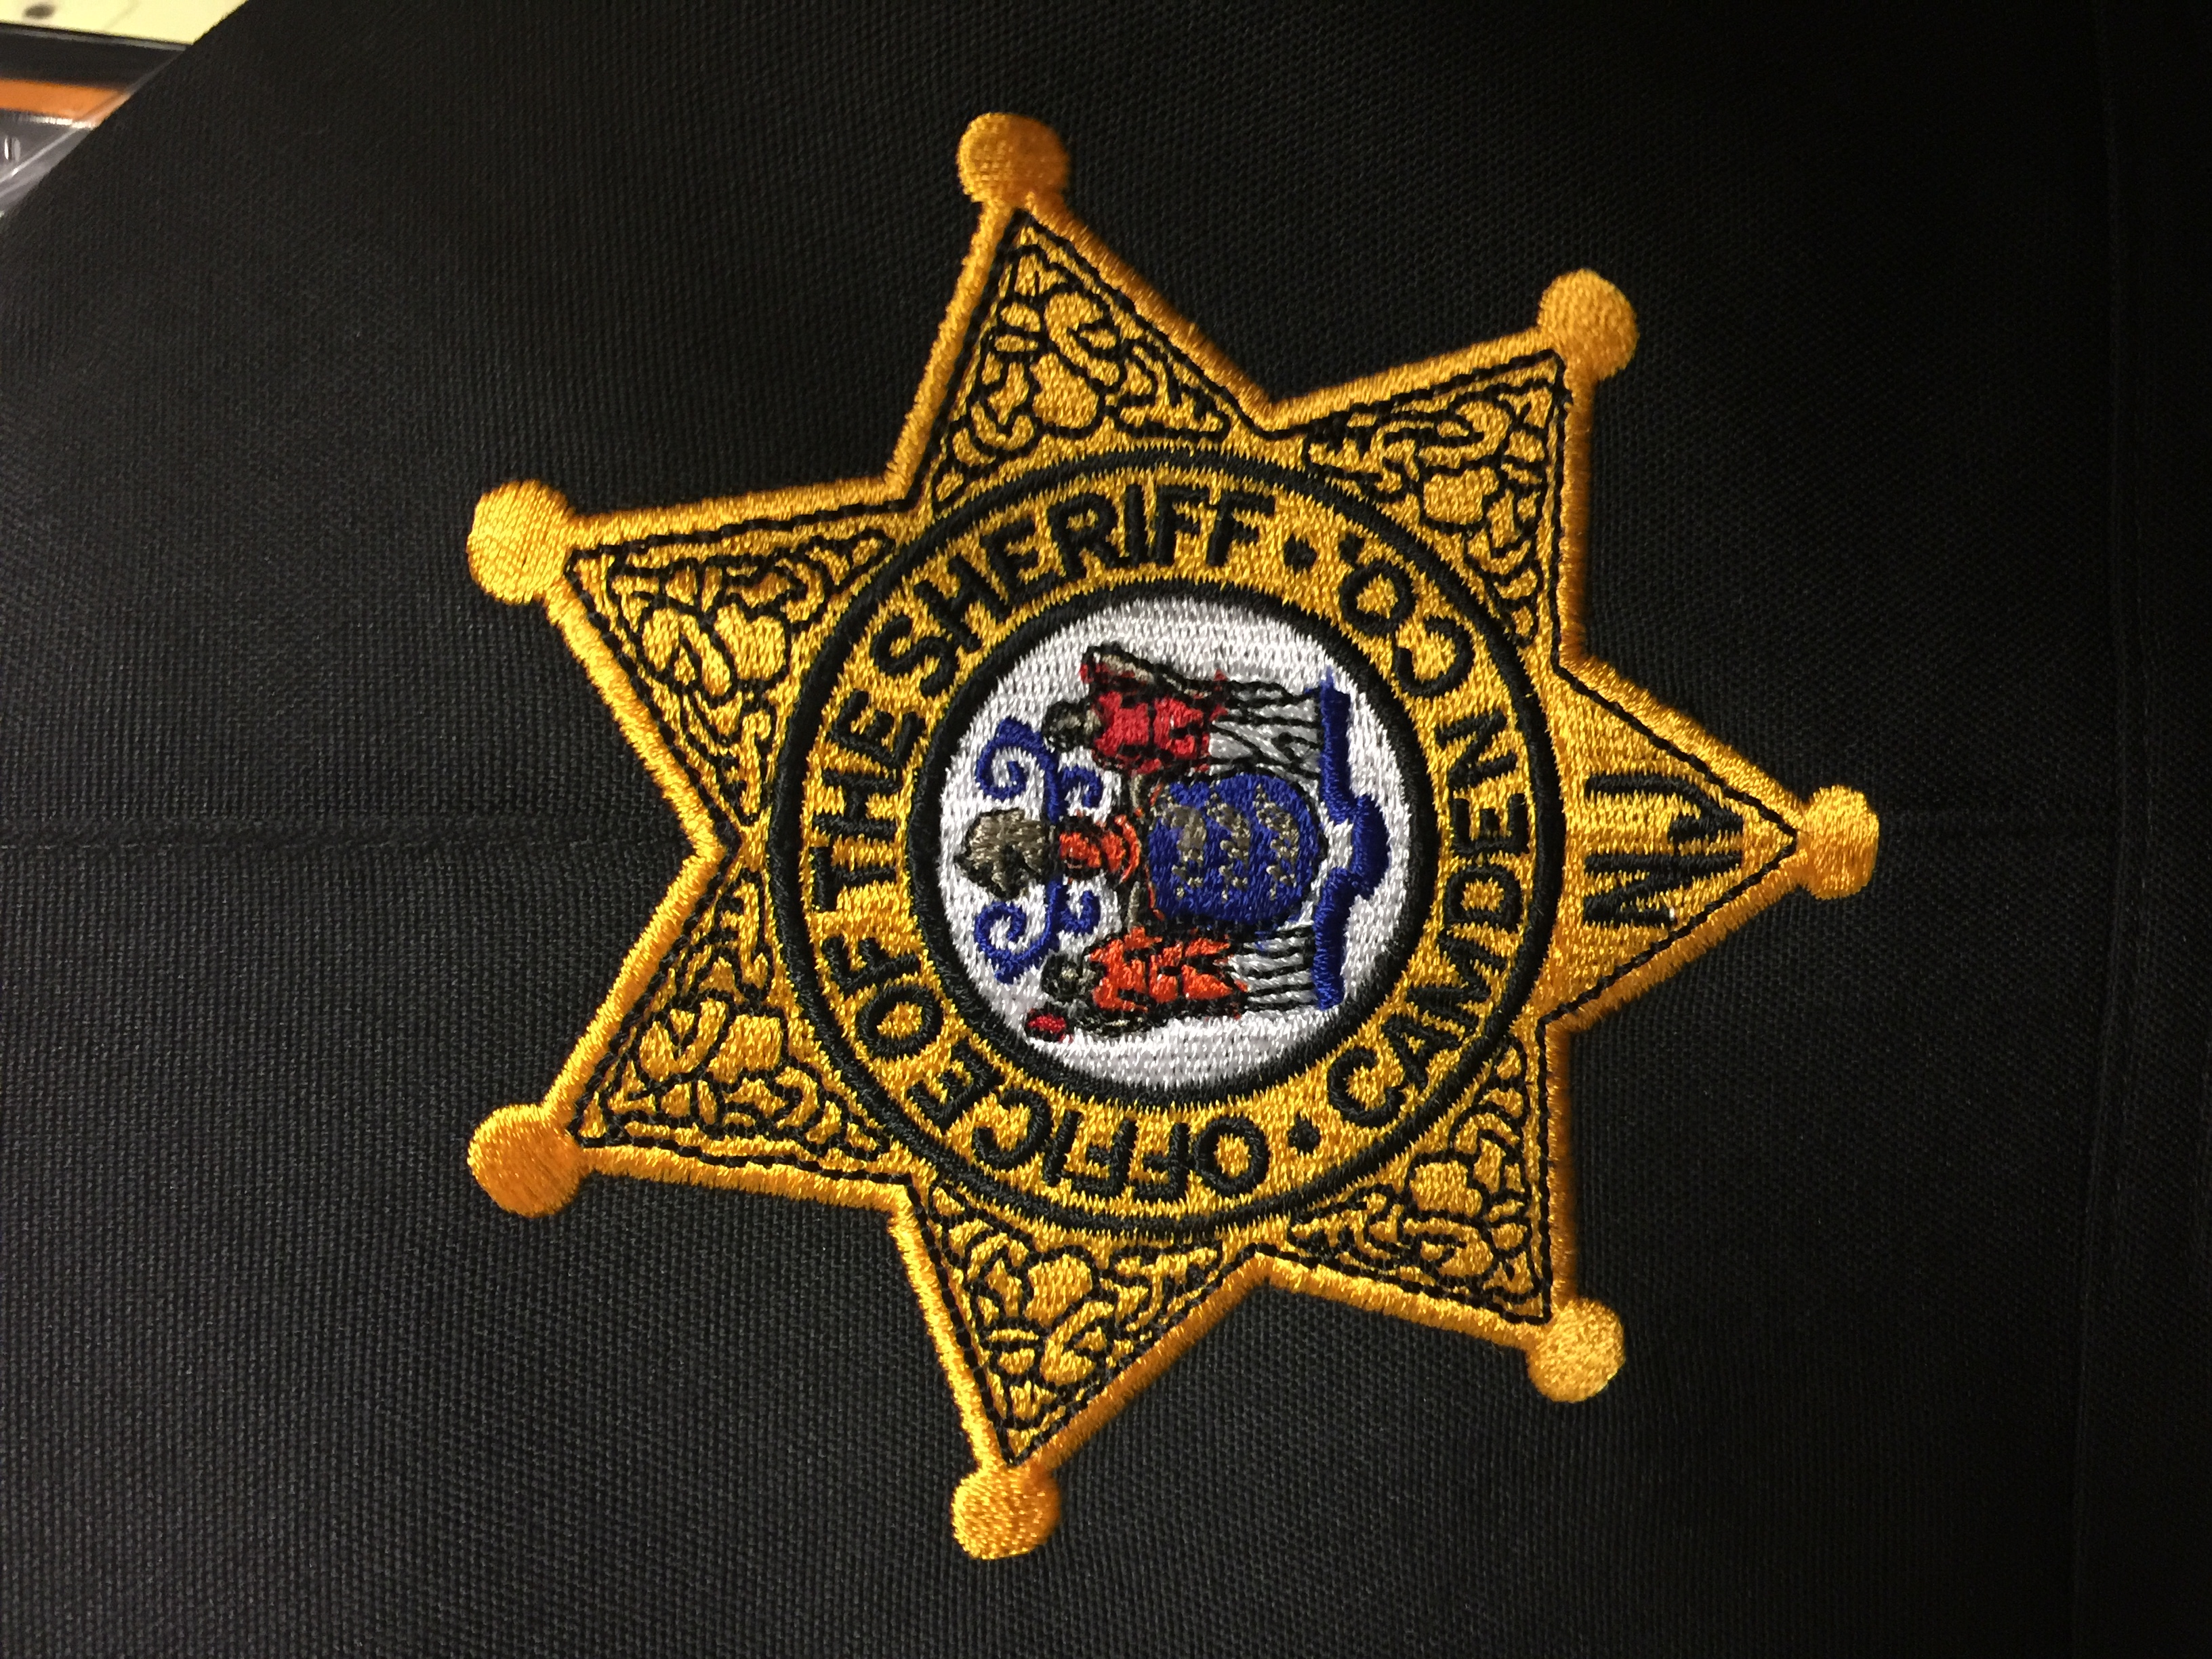 Camden County Sheriff Department